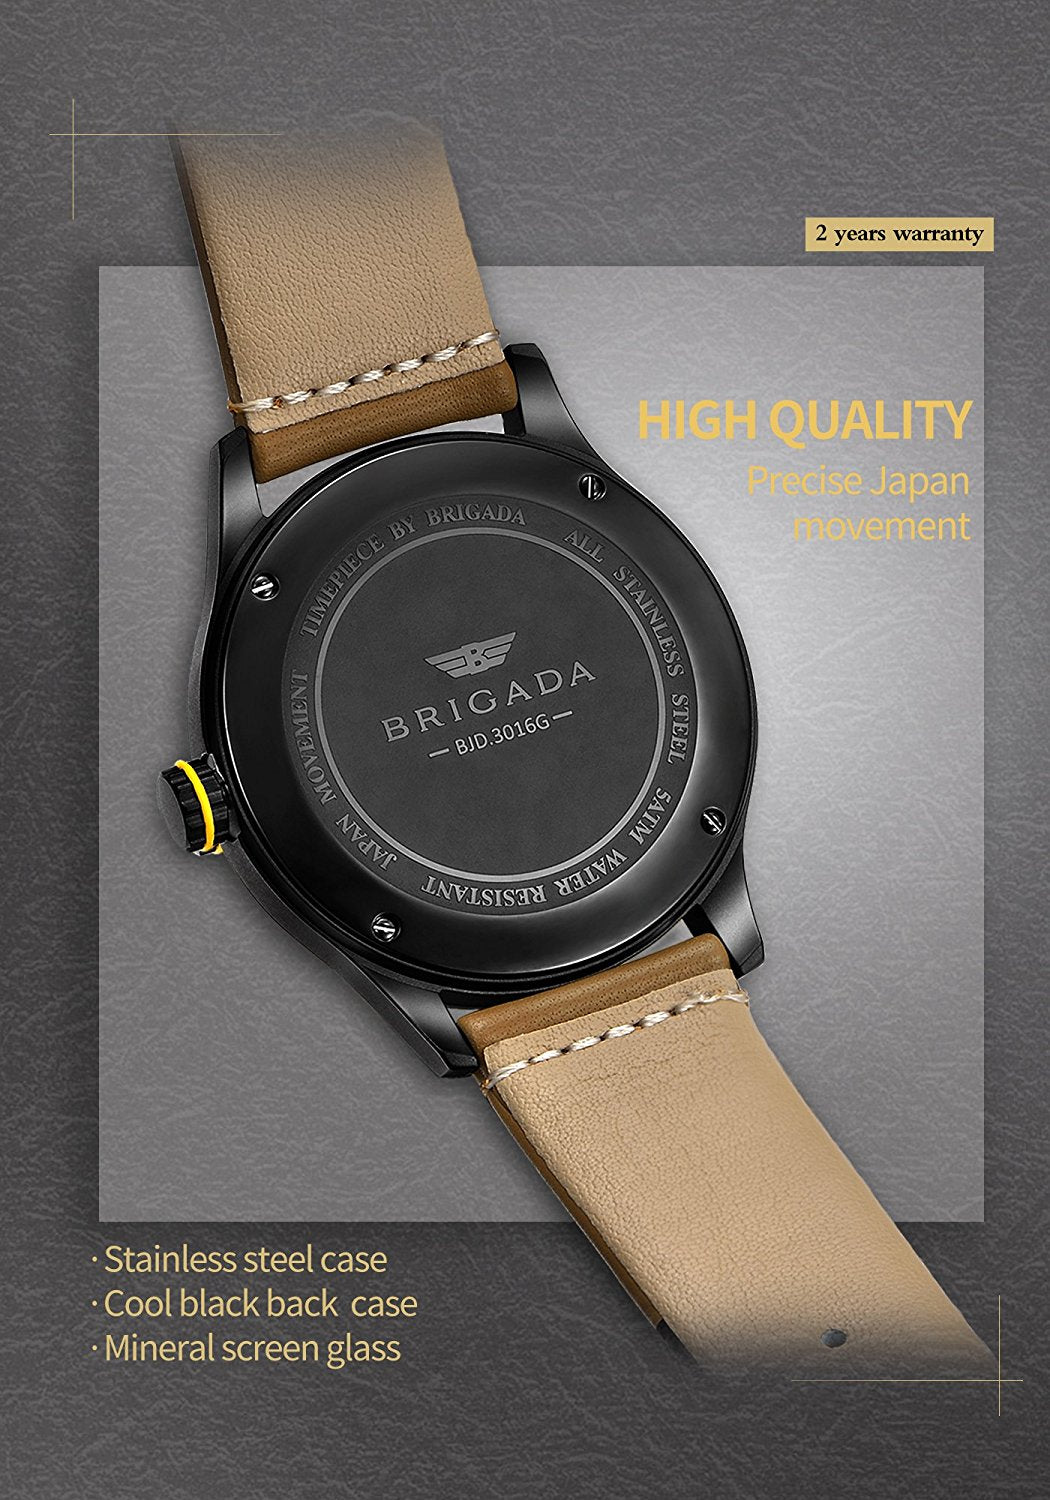 week sport men name product male quality leather stylish date hombre clock watches casual outdoor watch high business luxury brand reloj quartz band